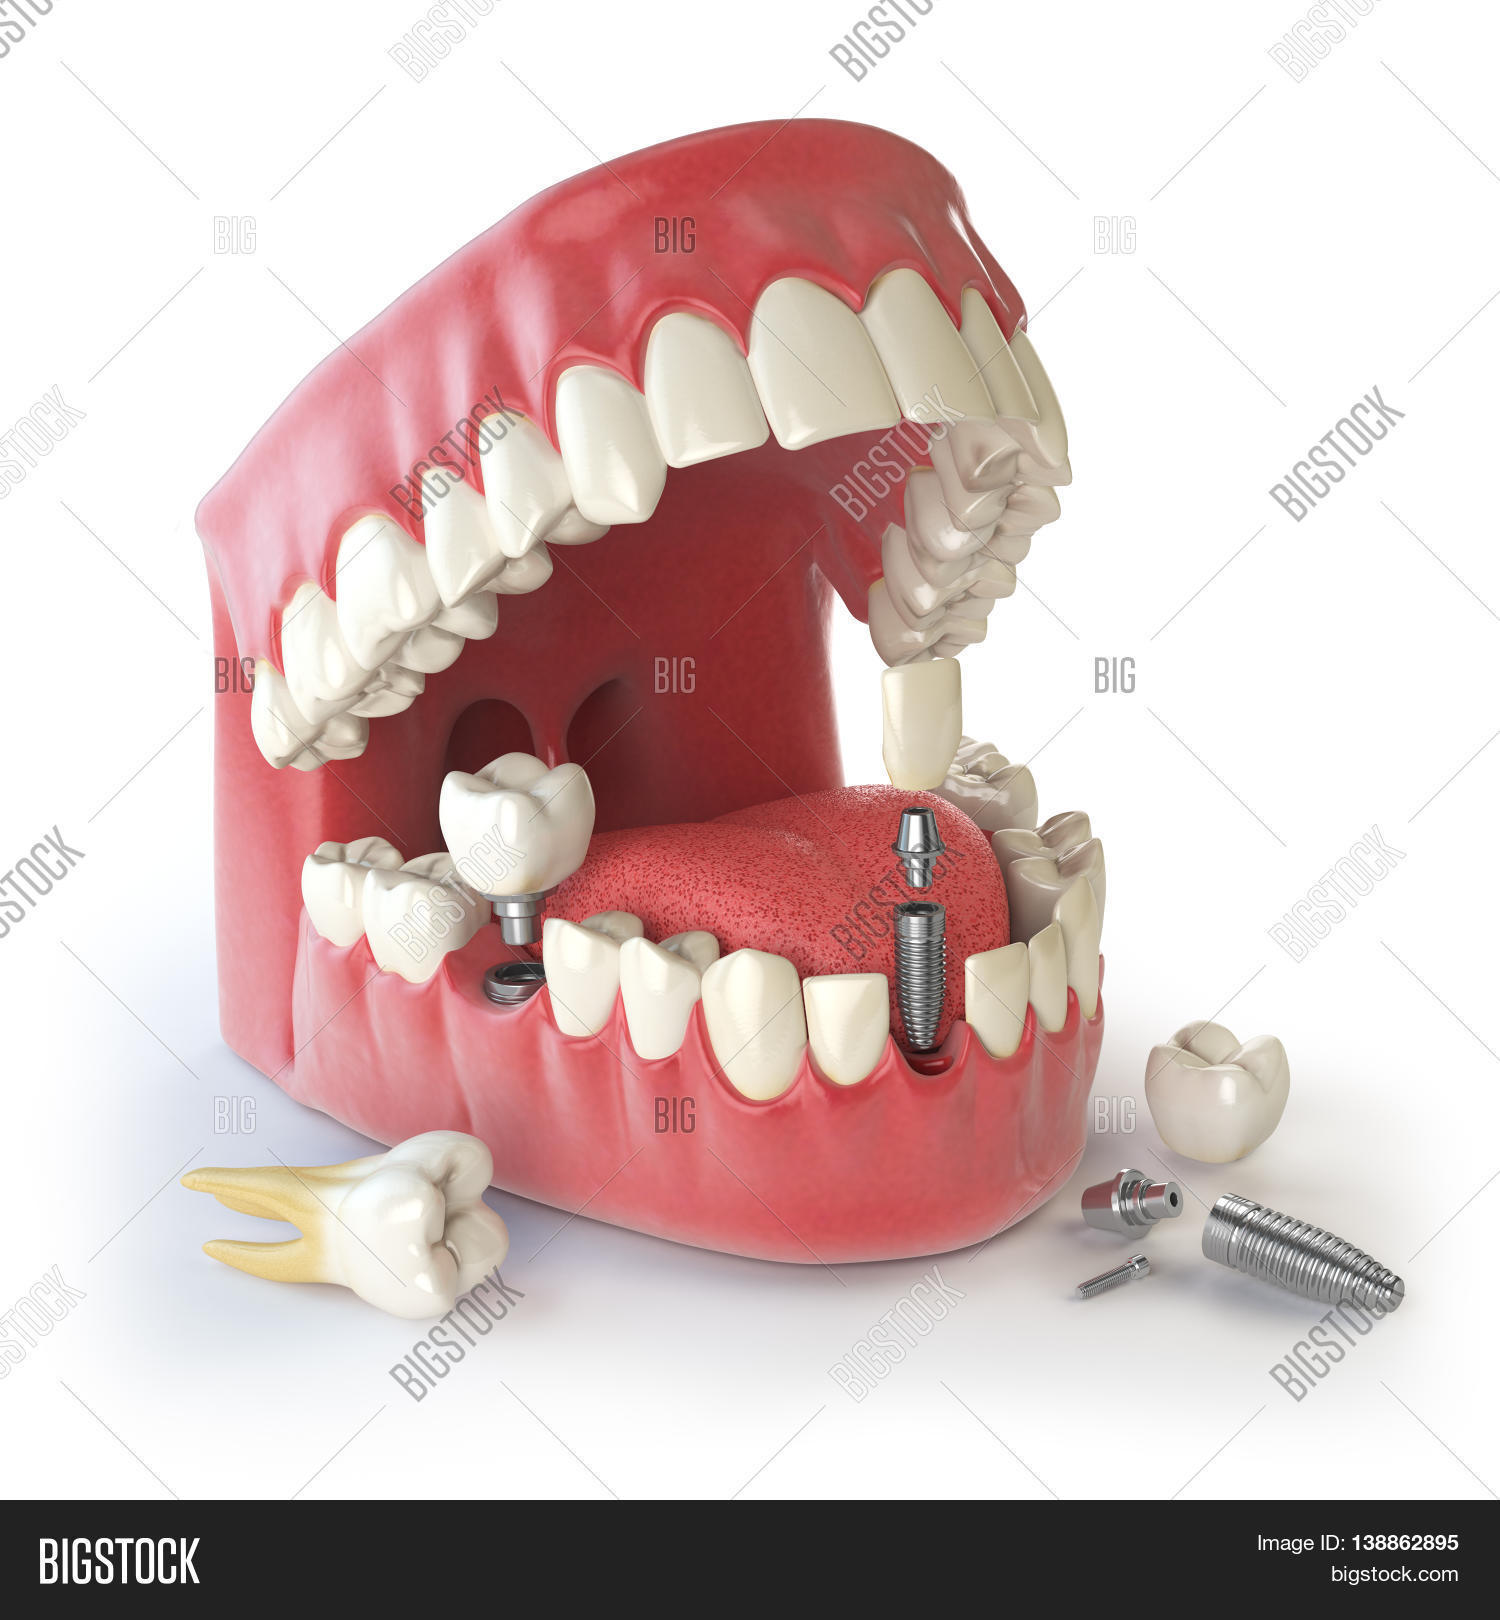 Tooth Human Implant Image Photo Free Trial Bigstock